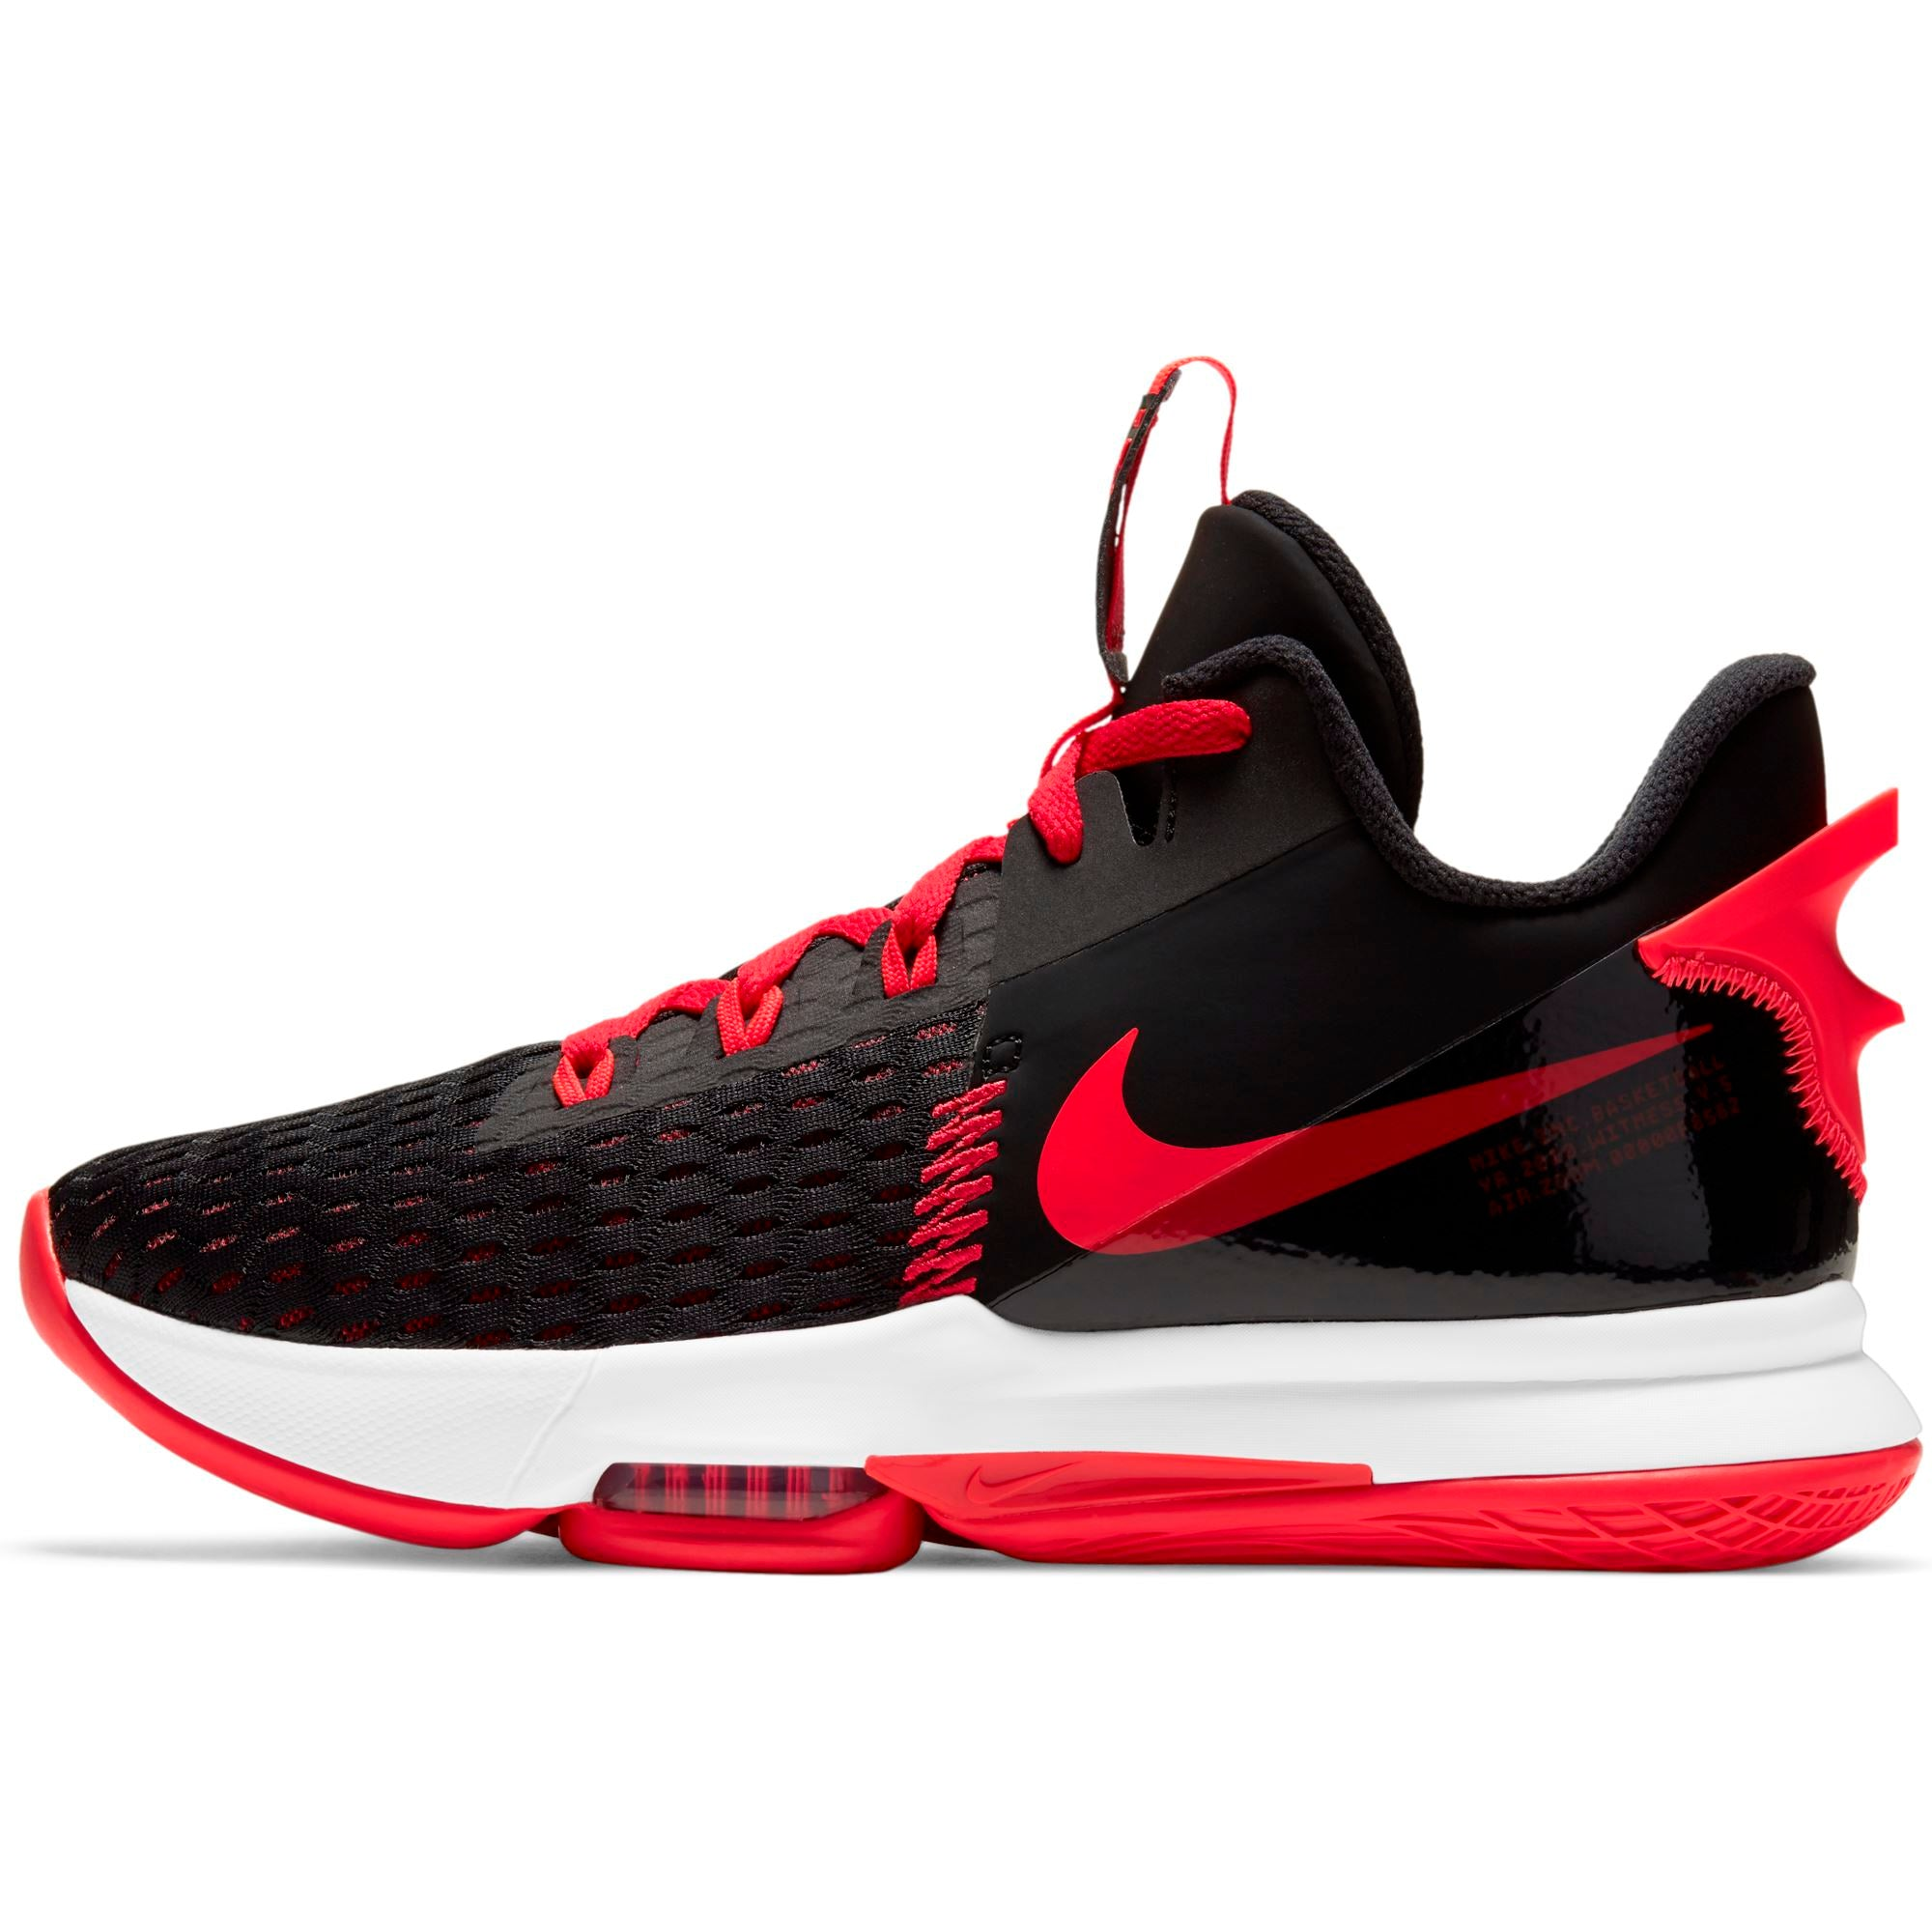 Nike Lebron Witness 5 - Black/Bright Crimson-University Red SP-Footwear-Mens Nike